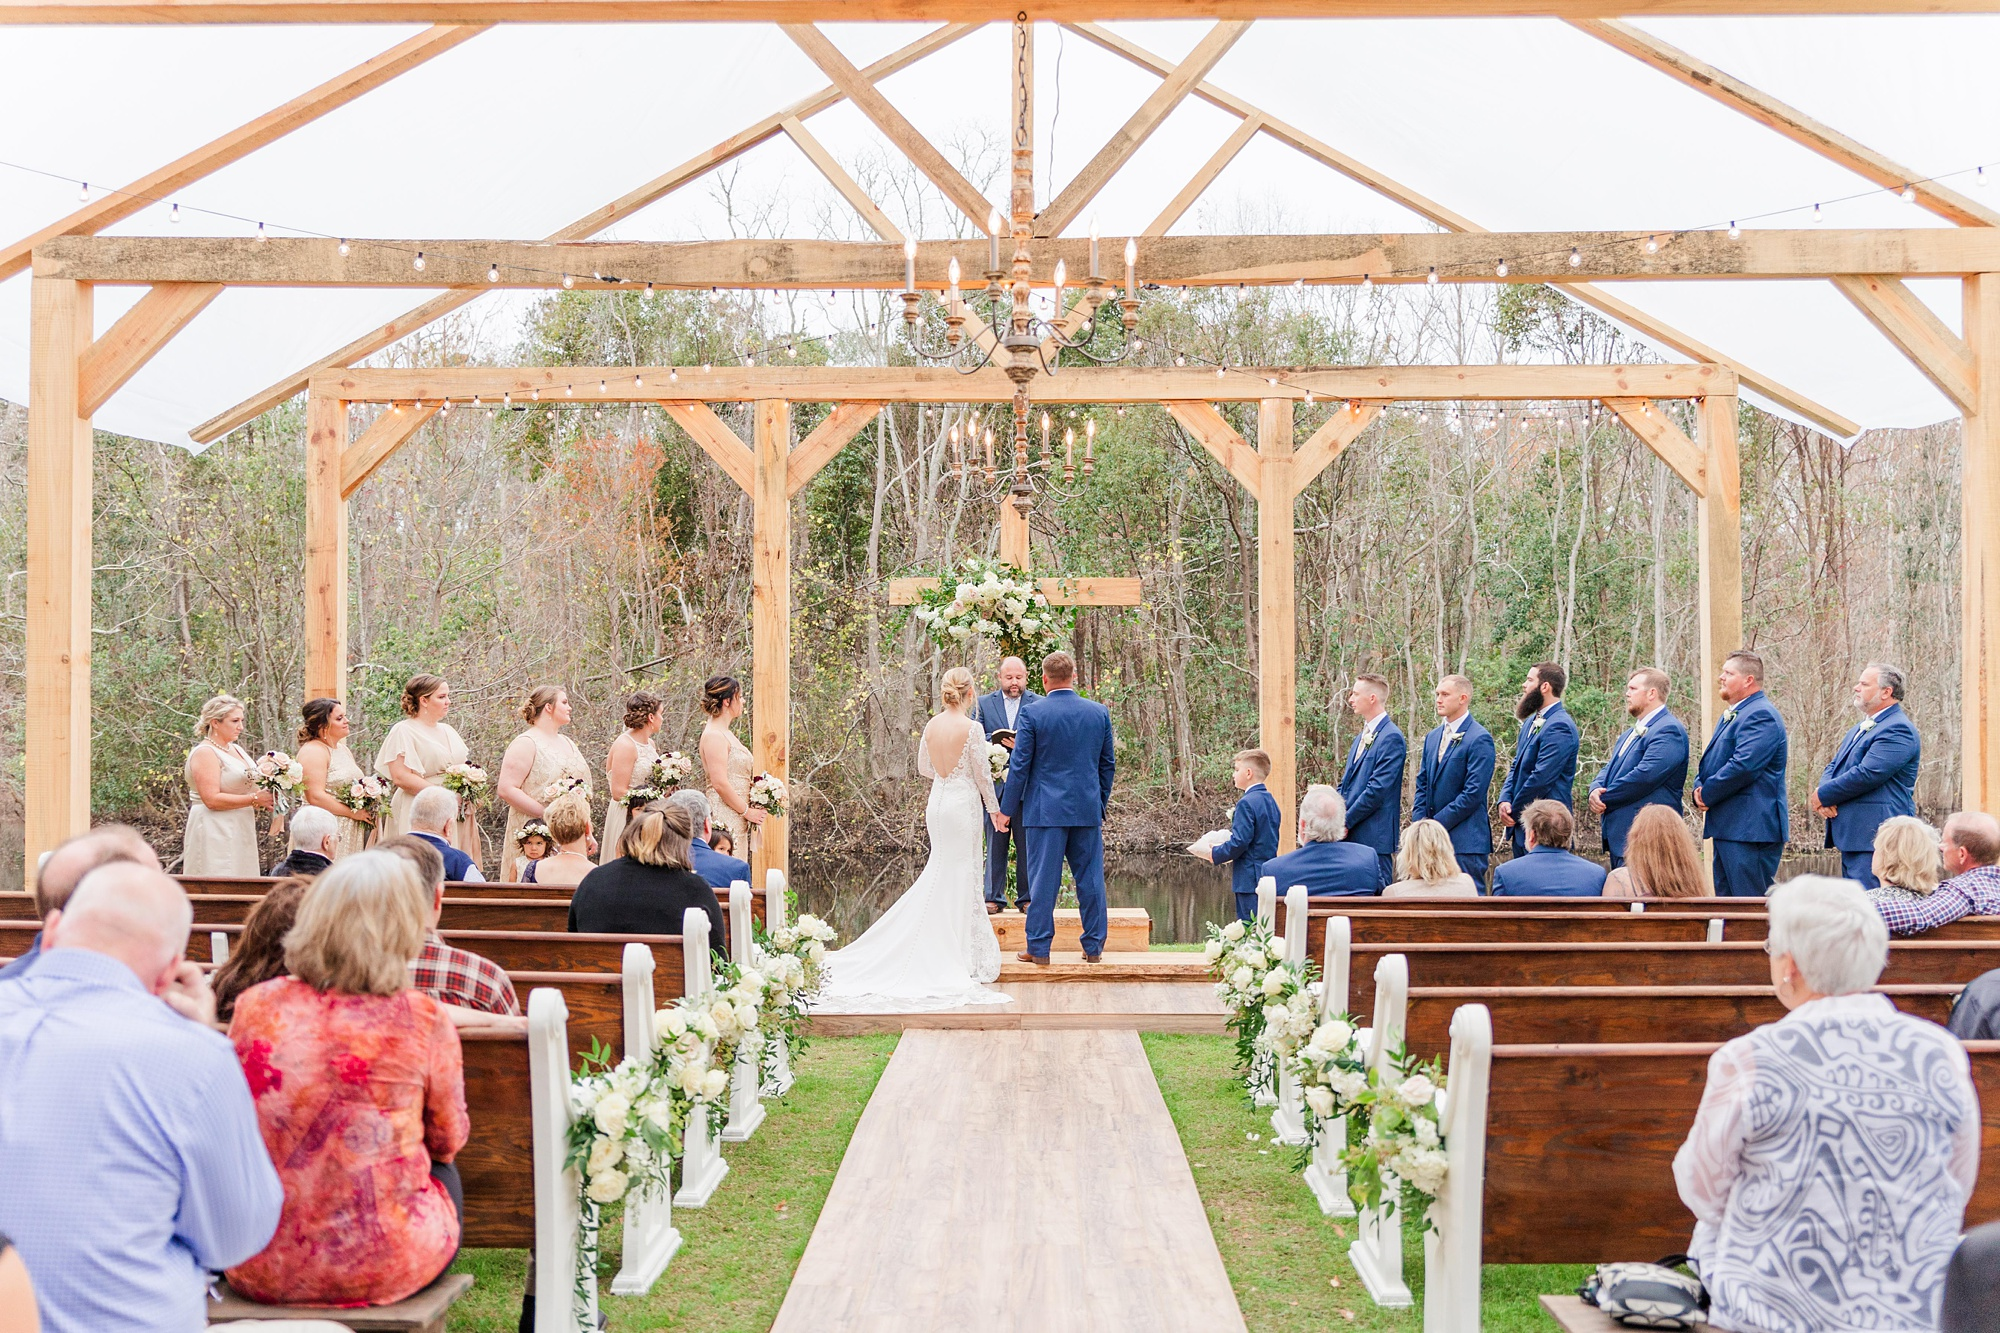 New Year's Eve wedding in wooden chapel